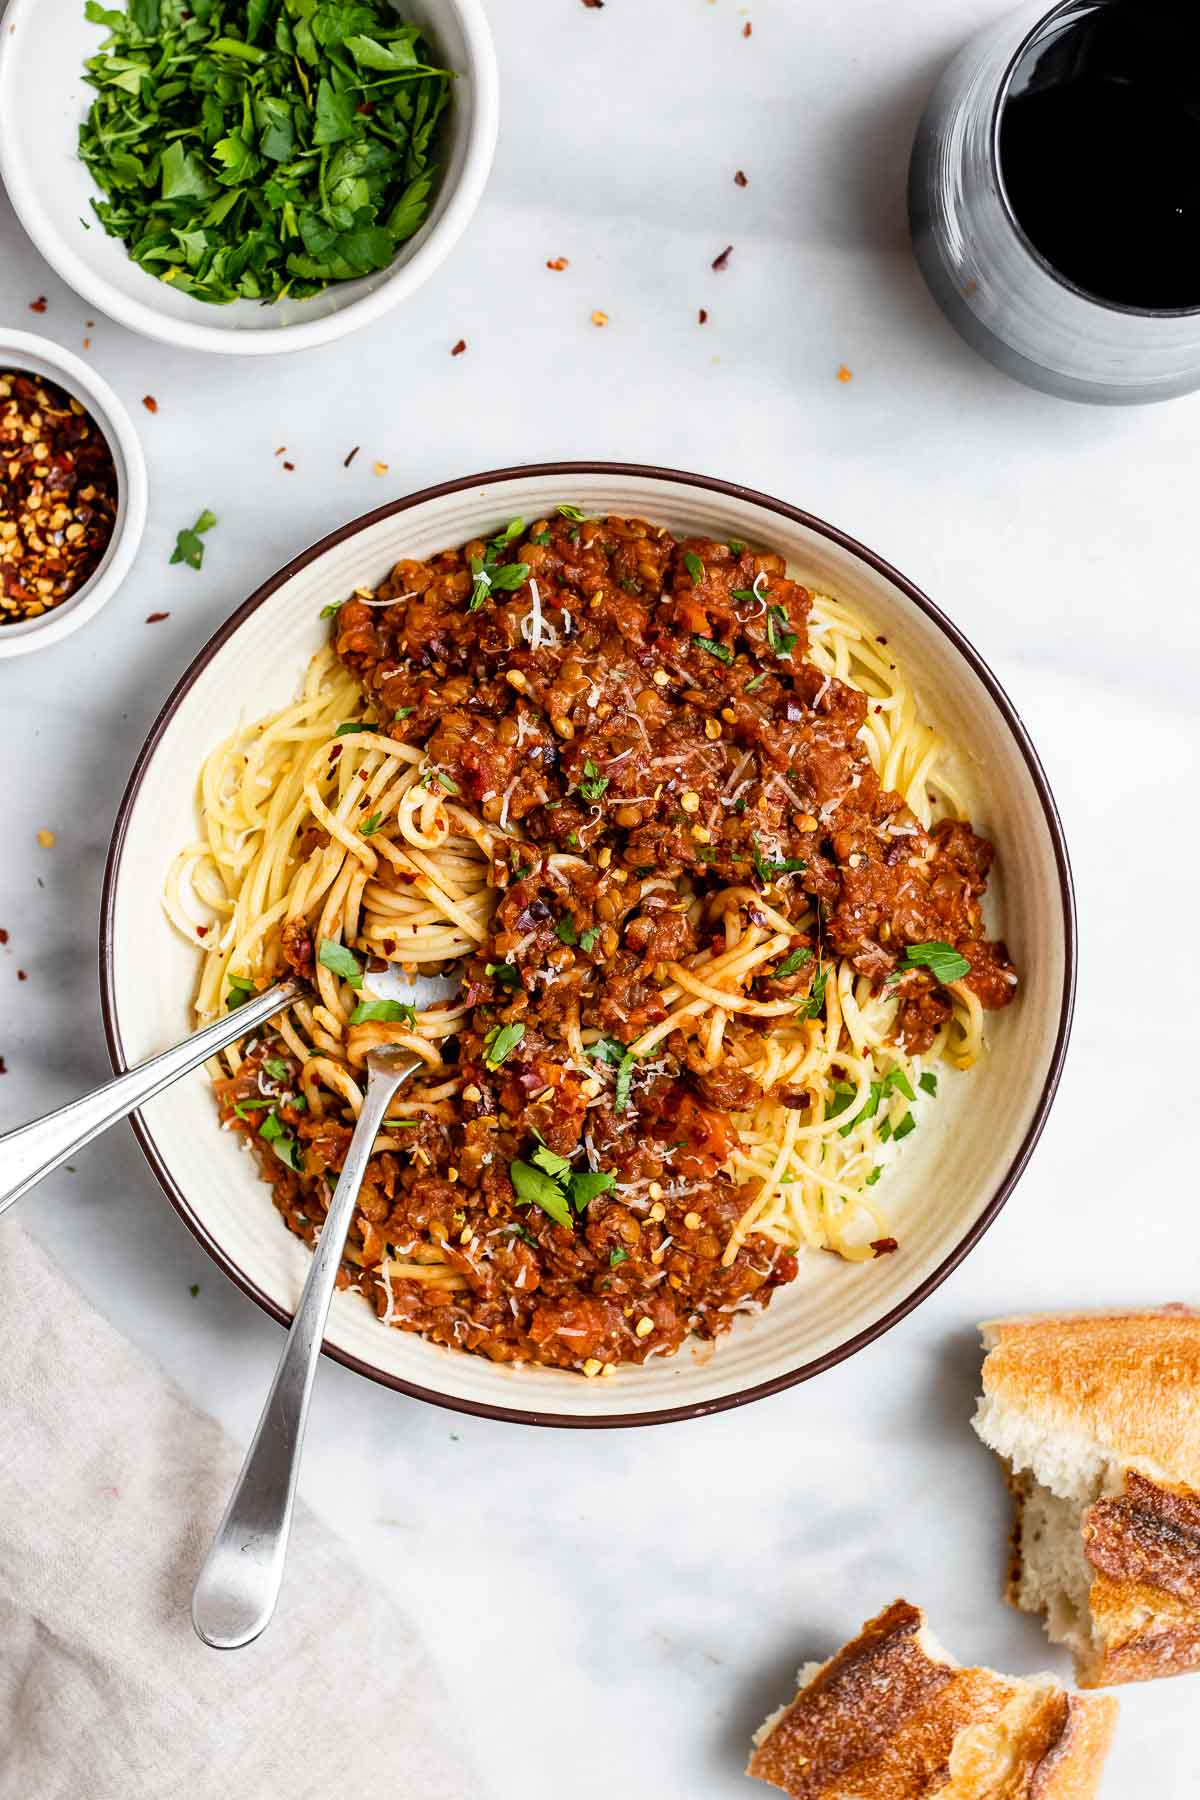 Vegan lentil bolognese in a white bowl with wine and bread on the side.